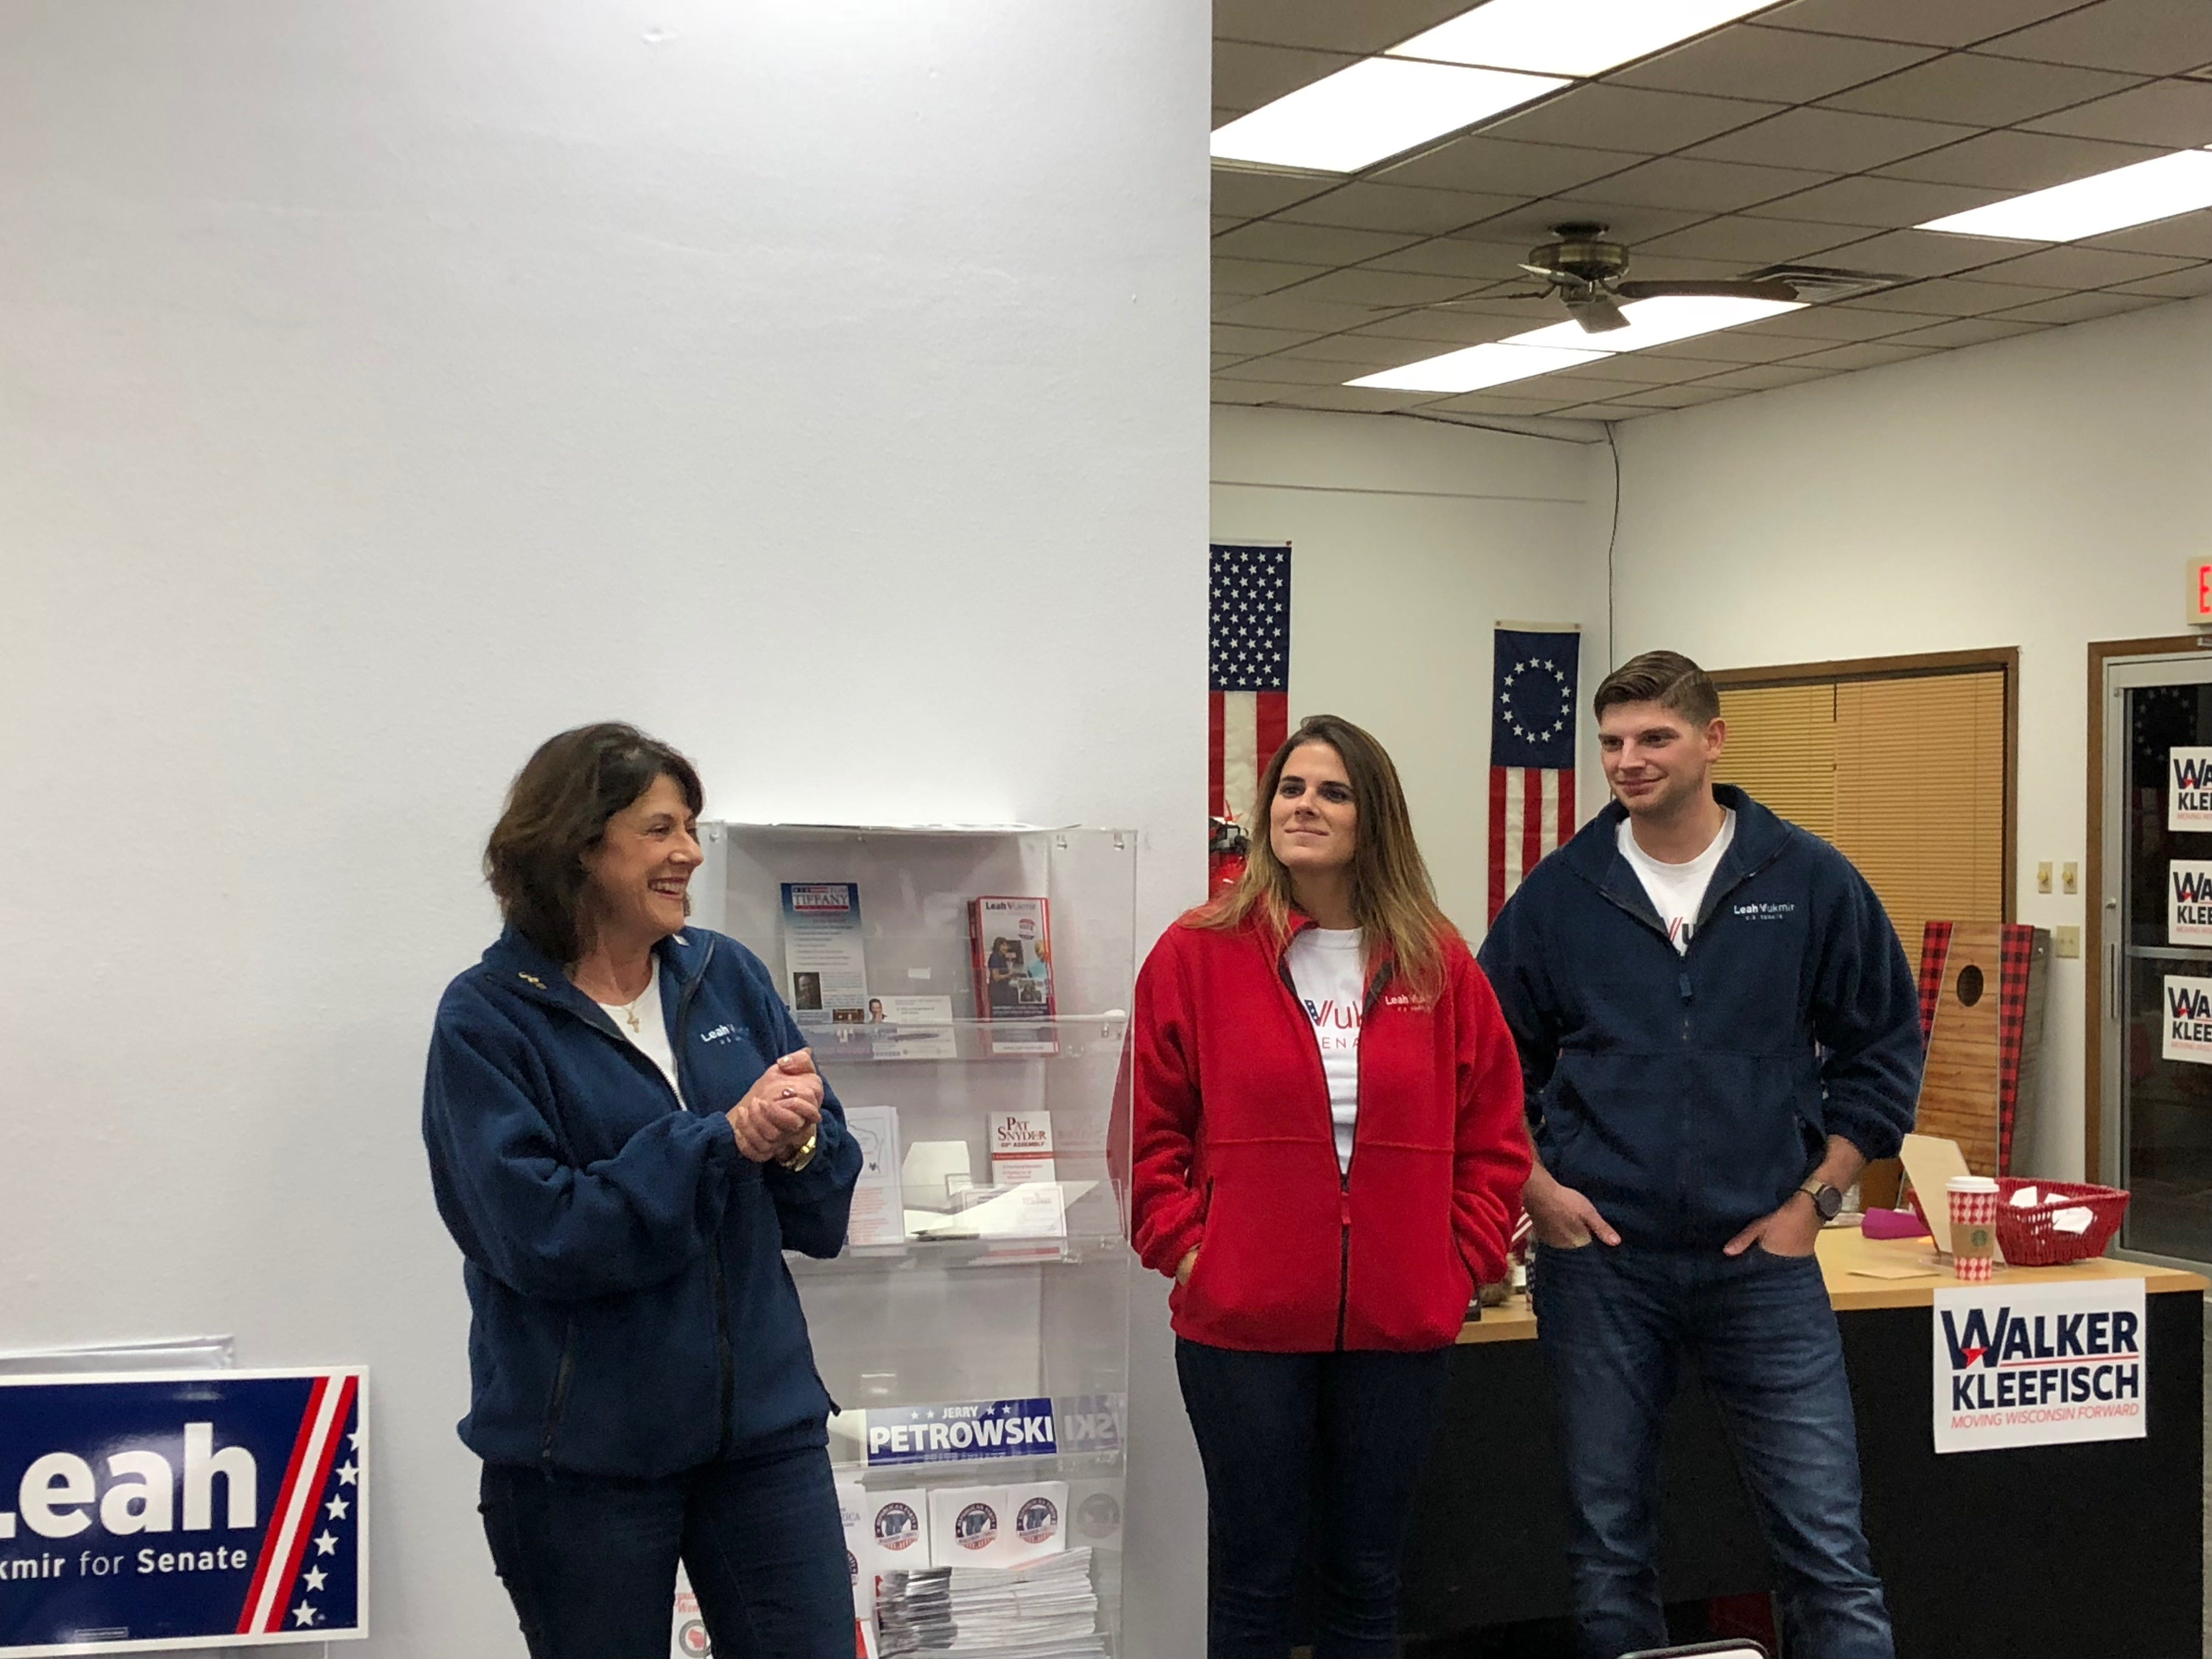 Leah Vukmir makes a campaign stop in Weston at the Marathon County Republican Campaign headquarters with her son and daughter on Nov. 5, 2018.